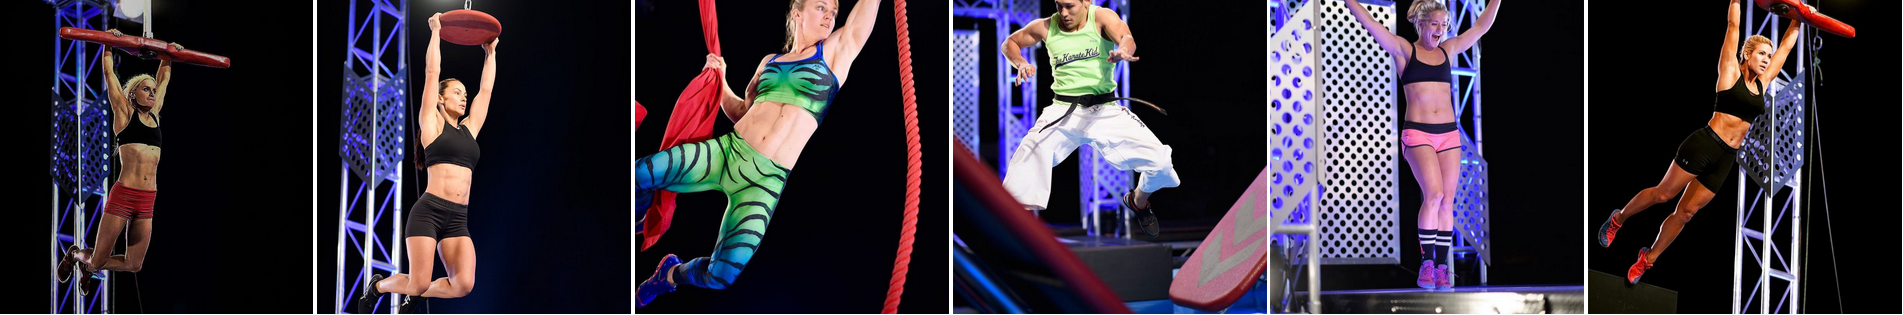 Australian Ninja Warrior Competitors